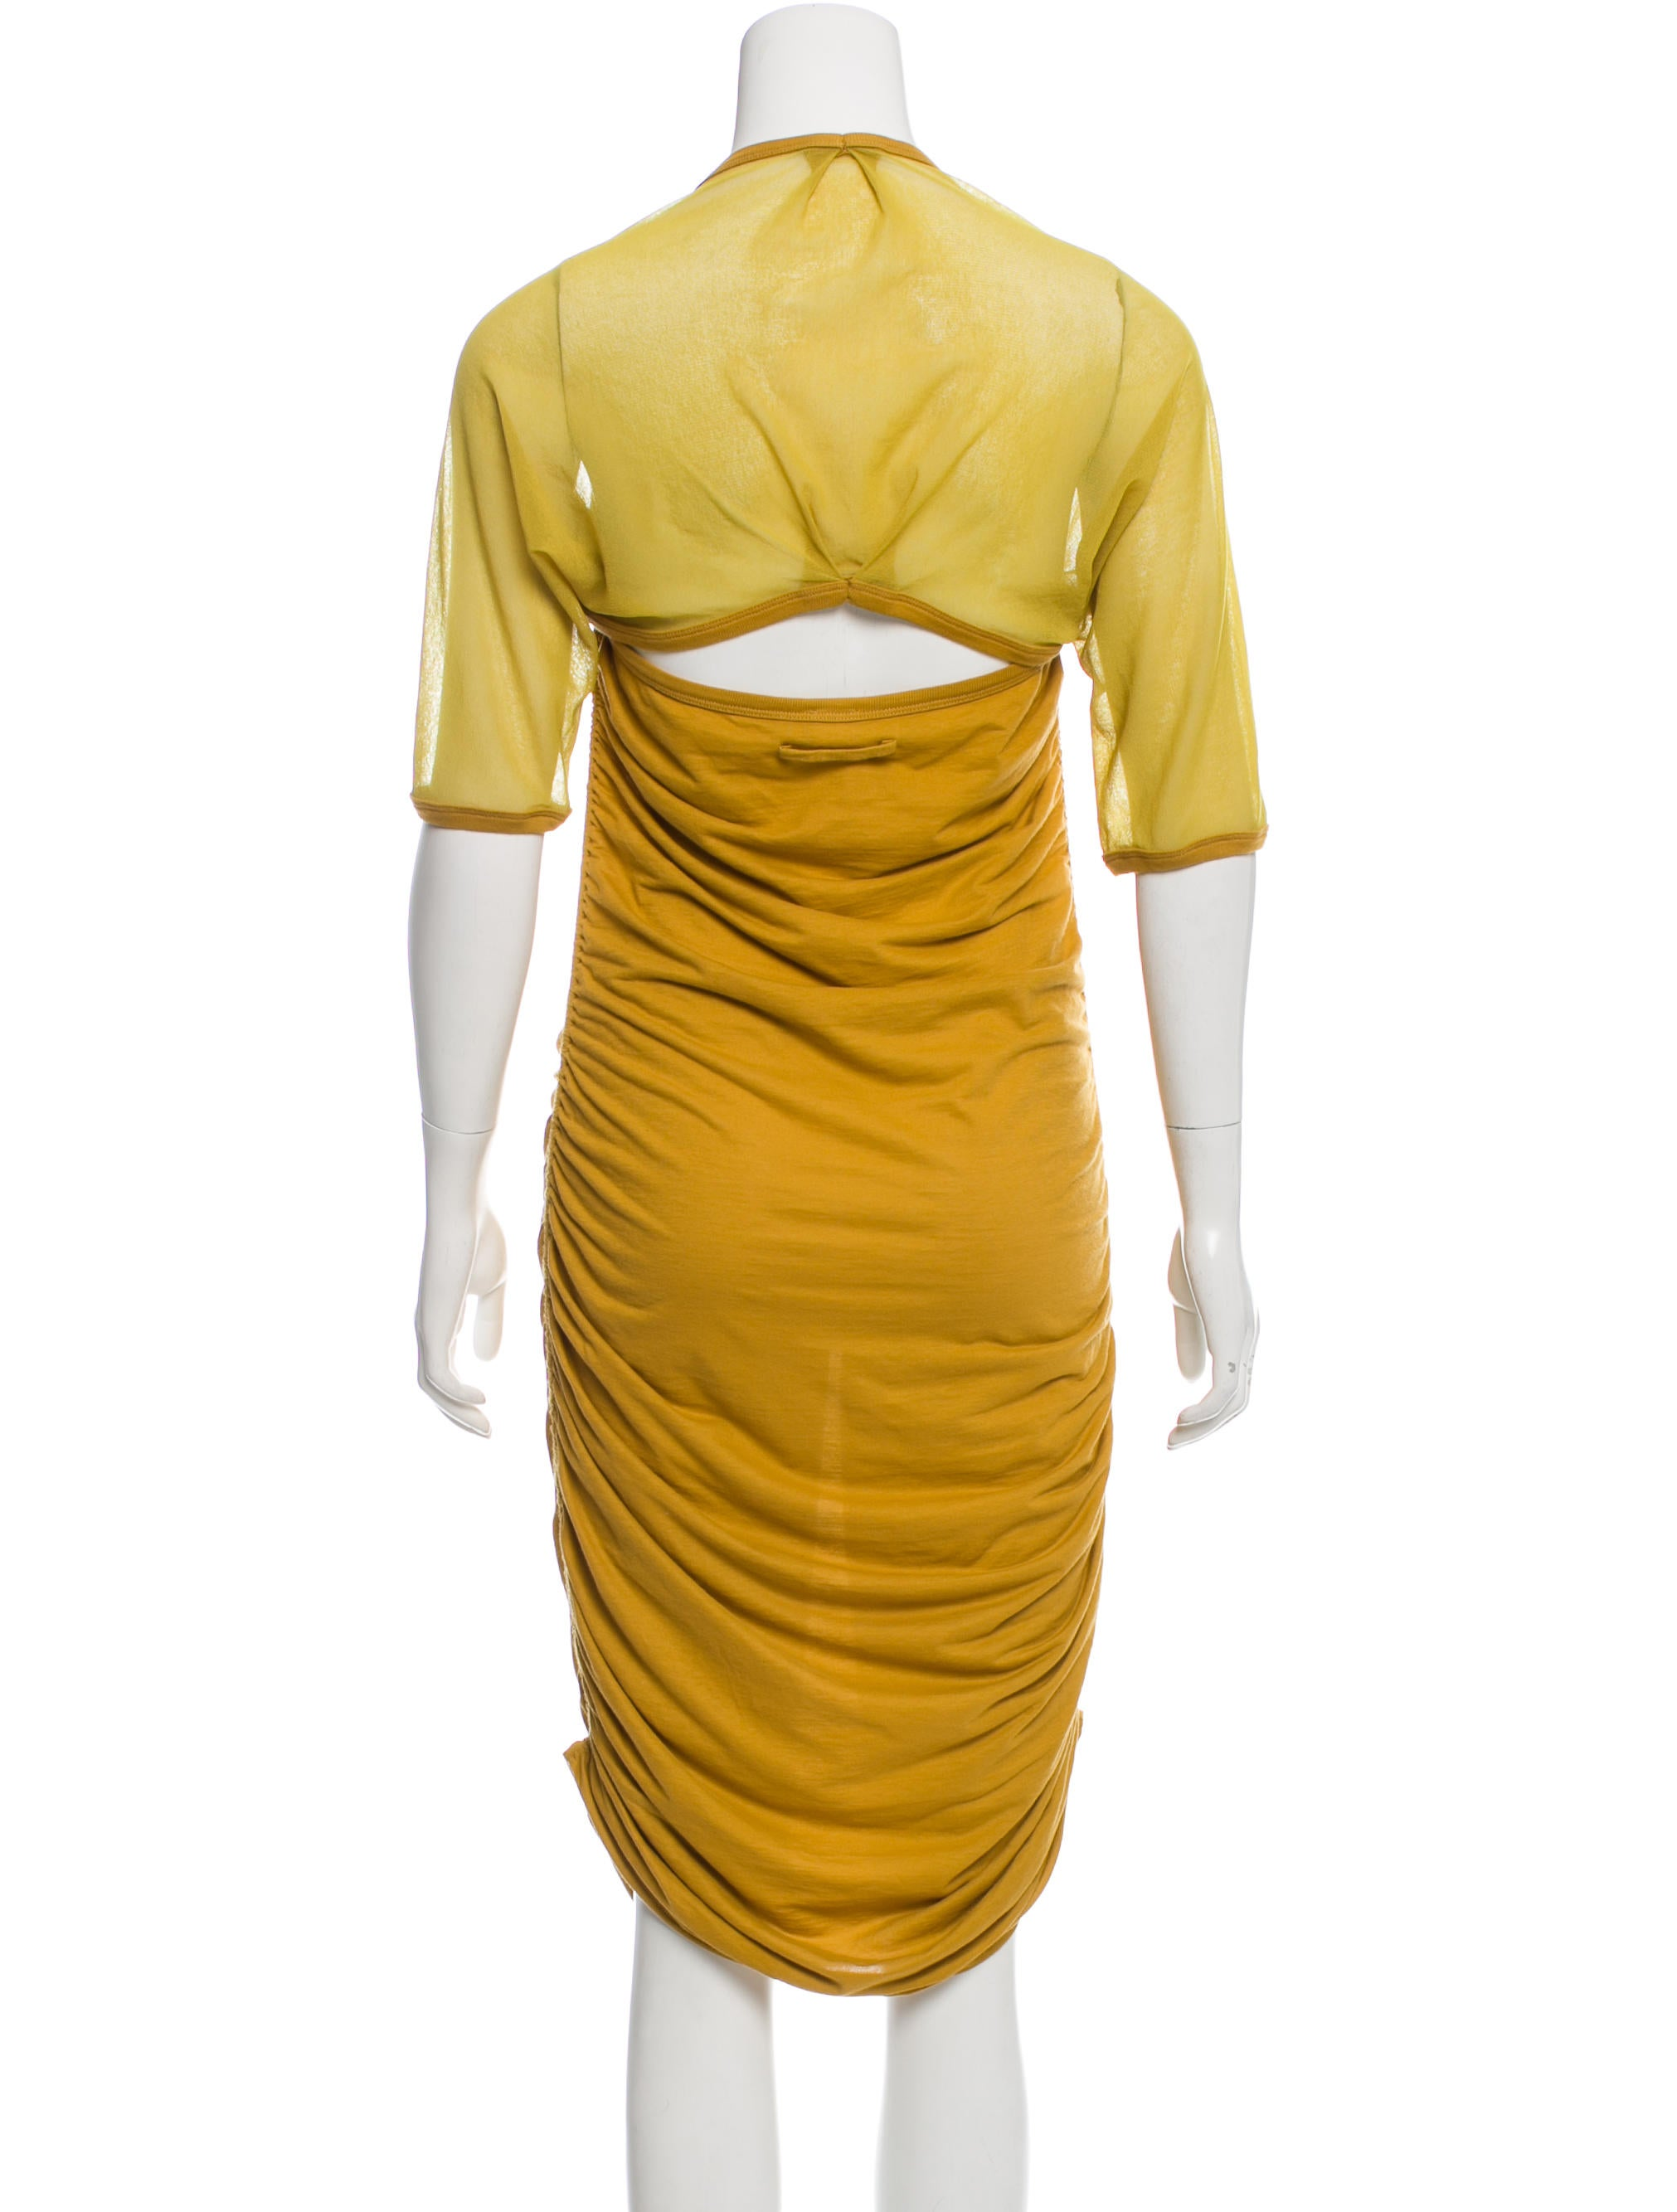 Jean paul gaultier soleil gathered midi dress clothing for Jean paul gaultier clothing